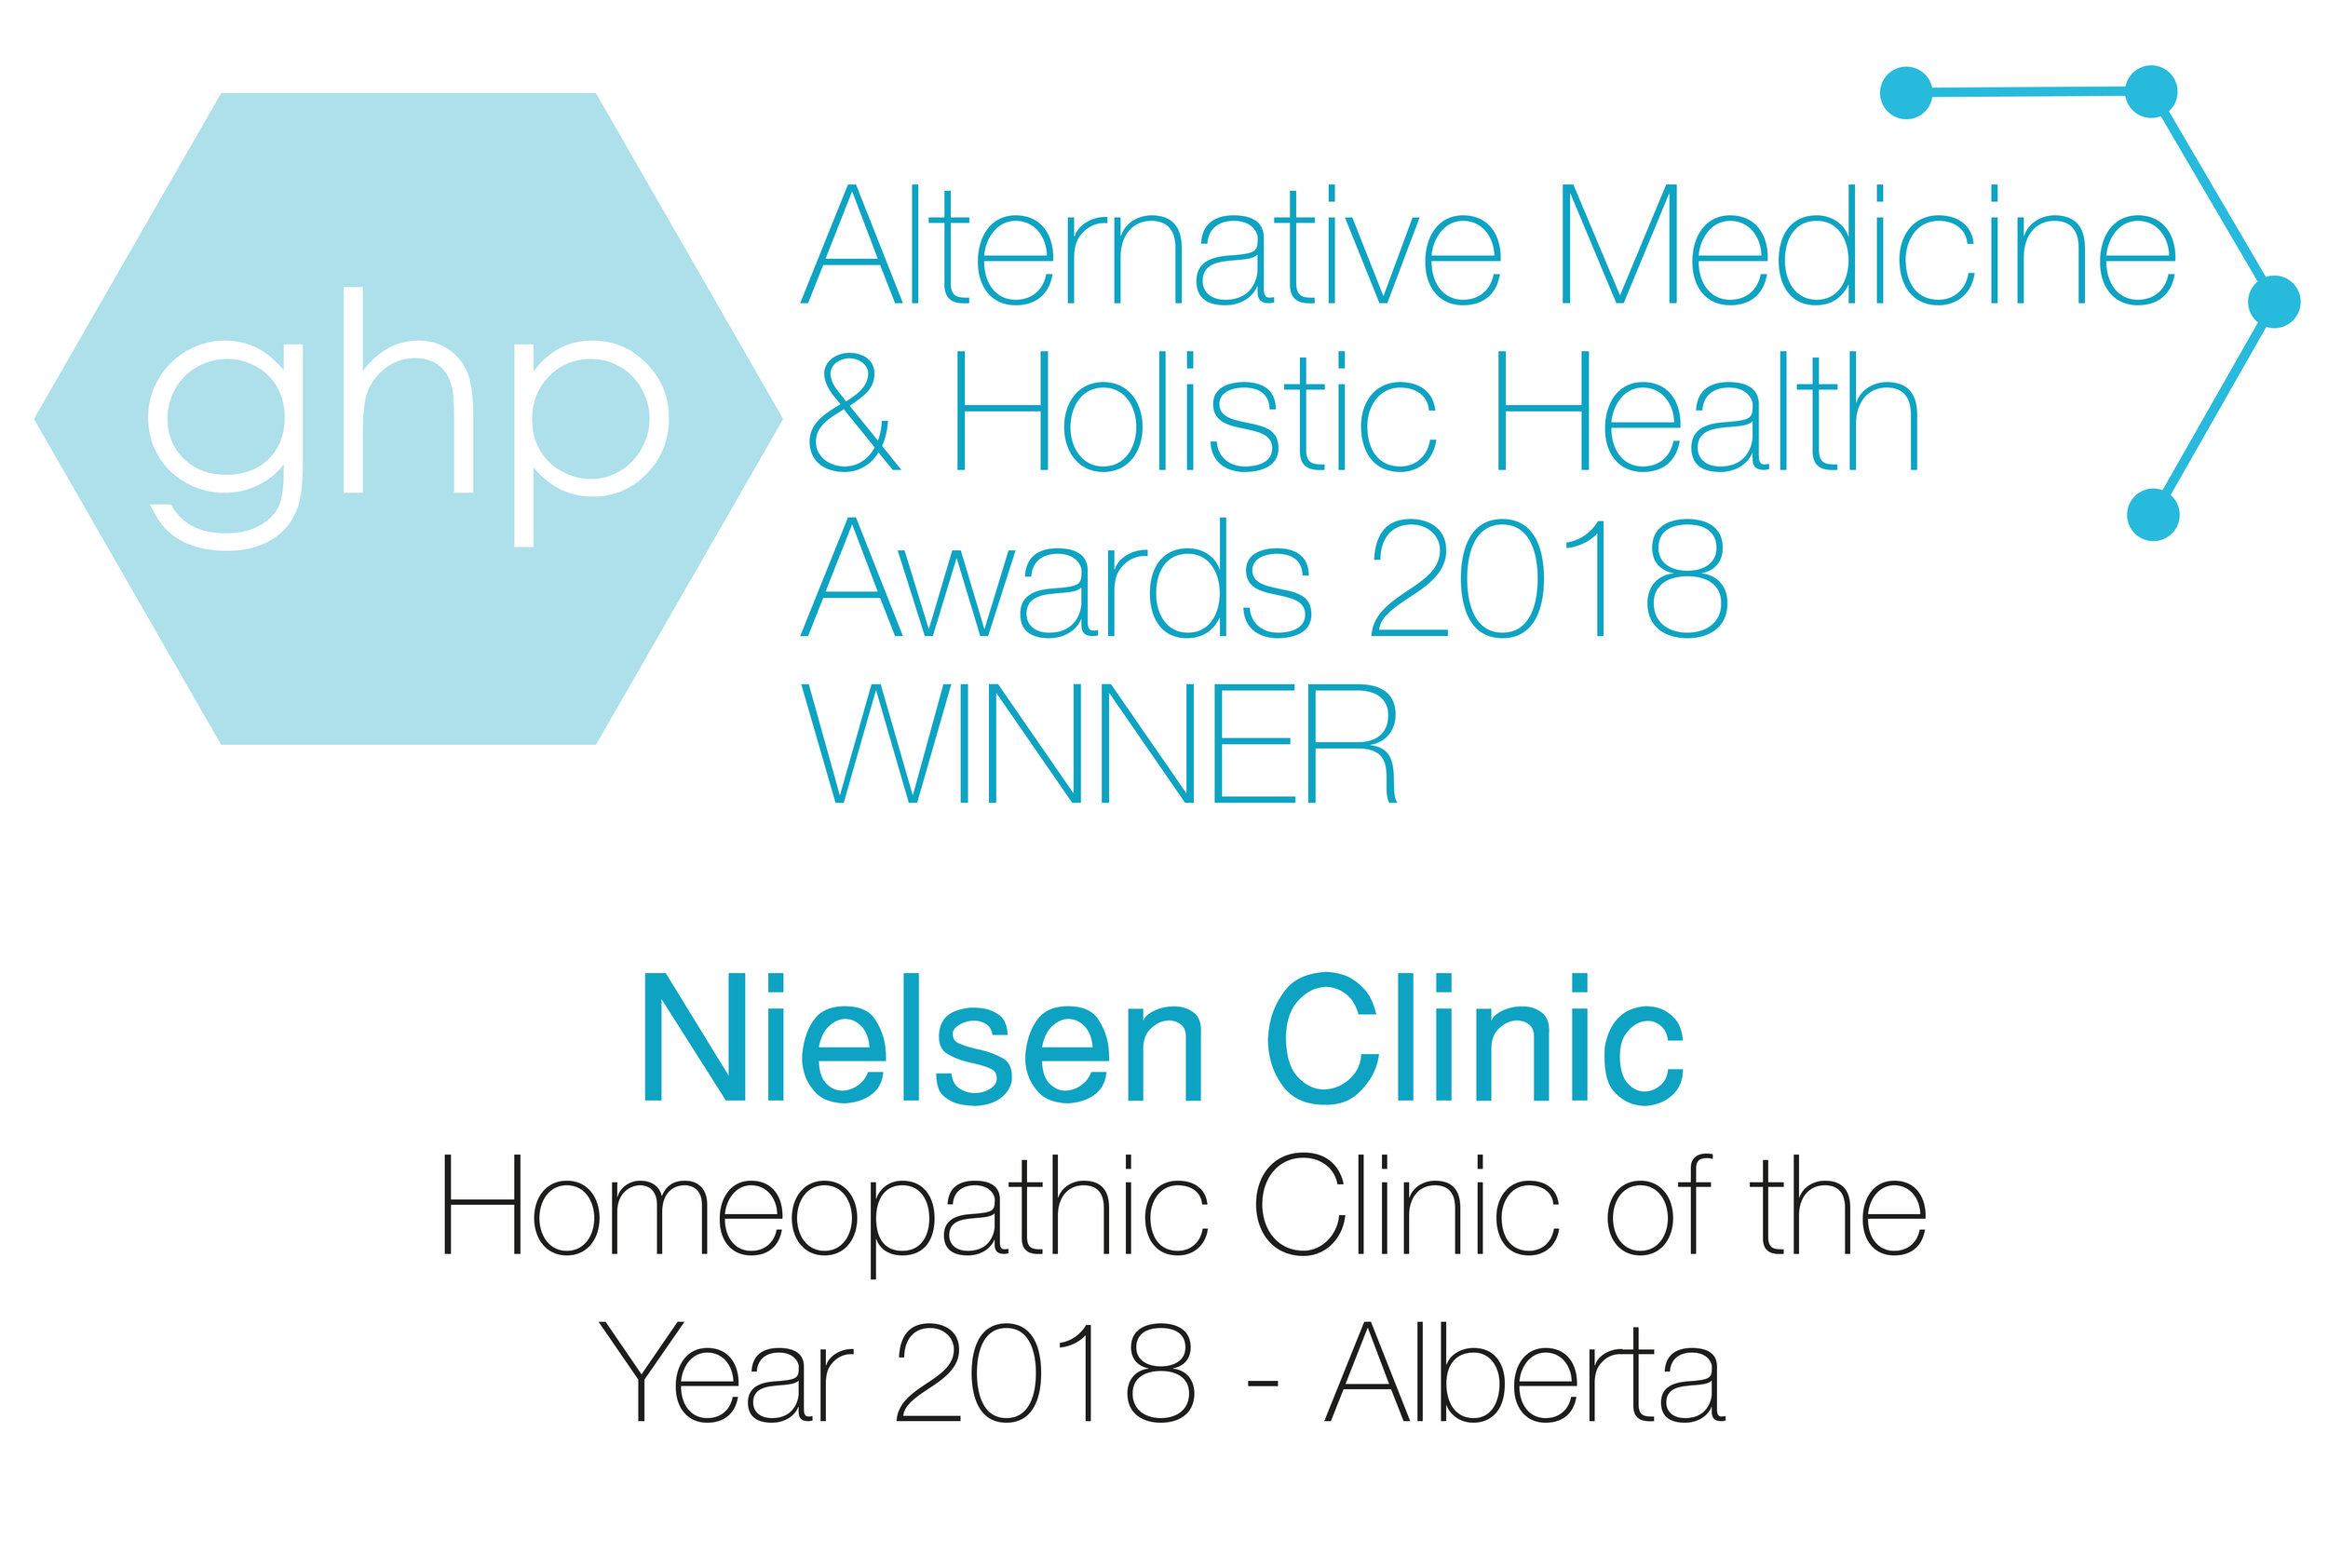 Homeopathic Clinic of the Year 2018 - Alberta -